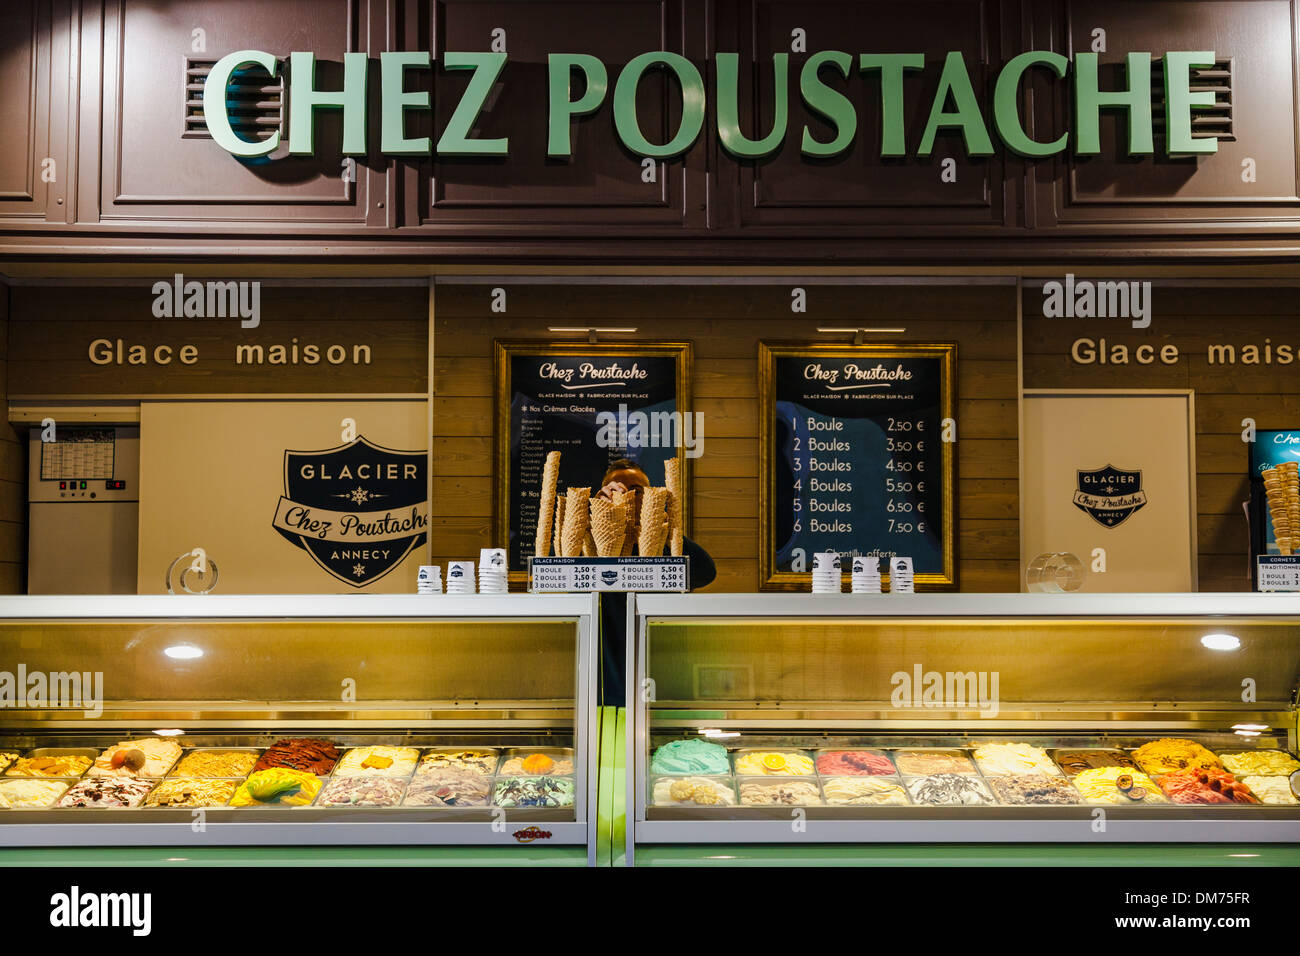 Chez Poustache ice-cream parlour in Annecy old town, Annecy, Savoie, France - Stock Image